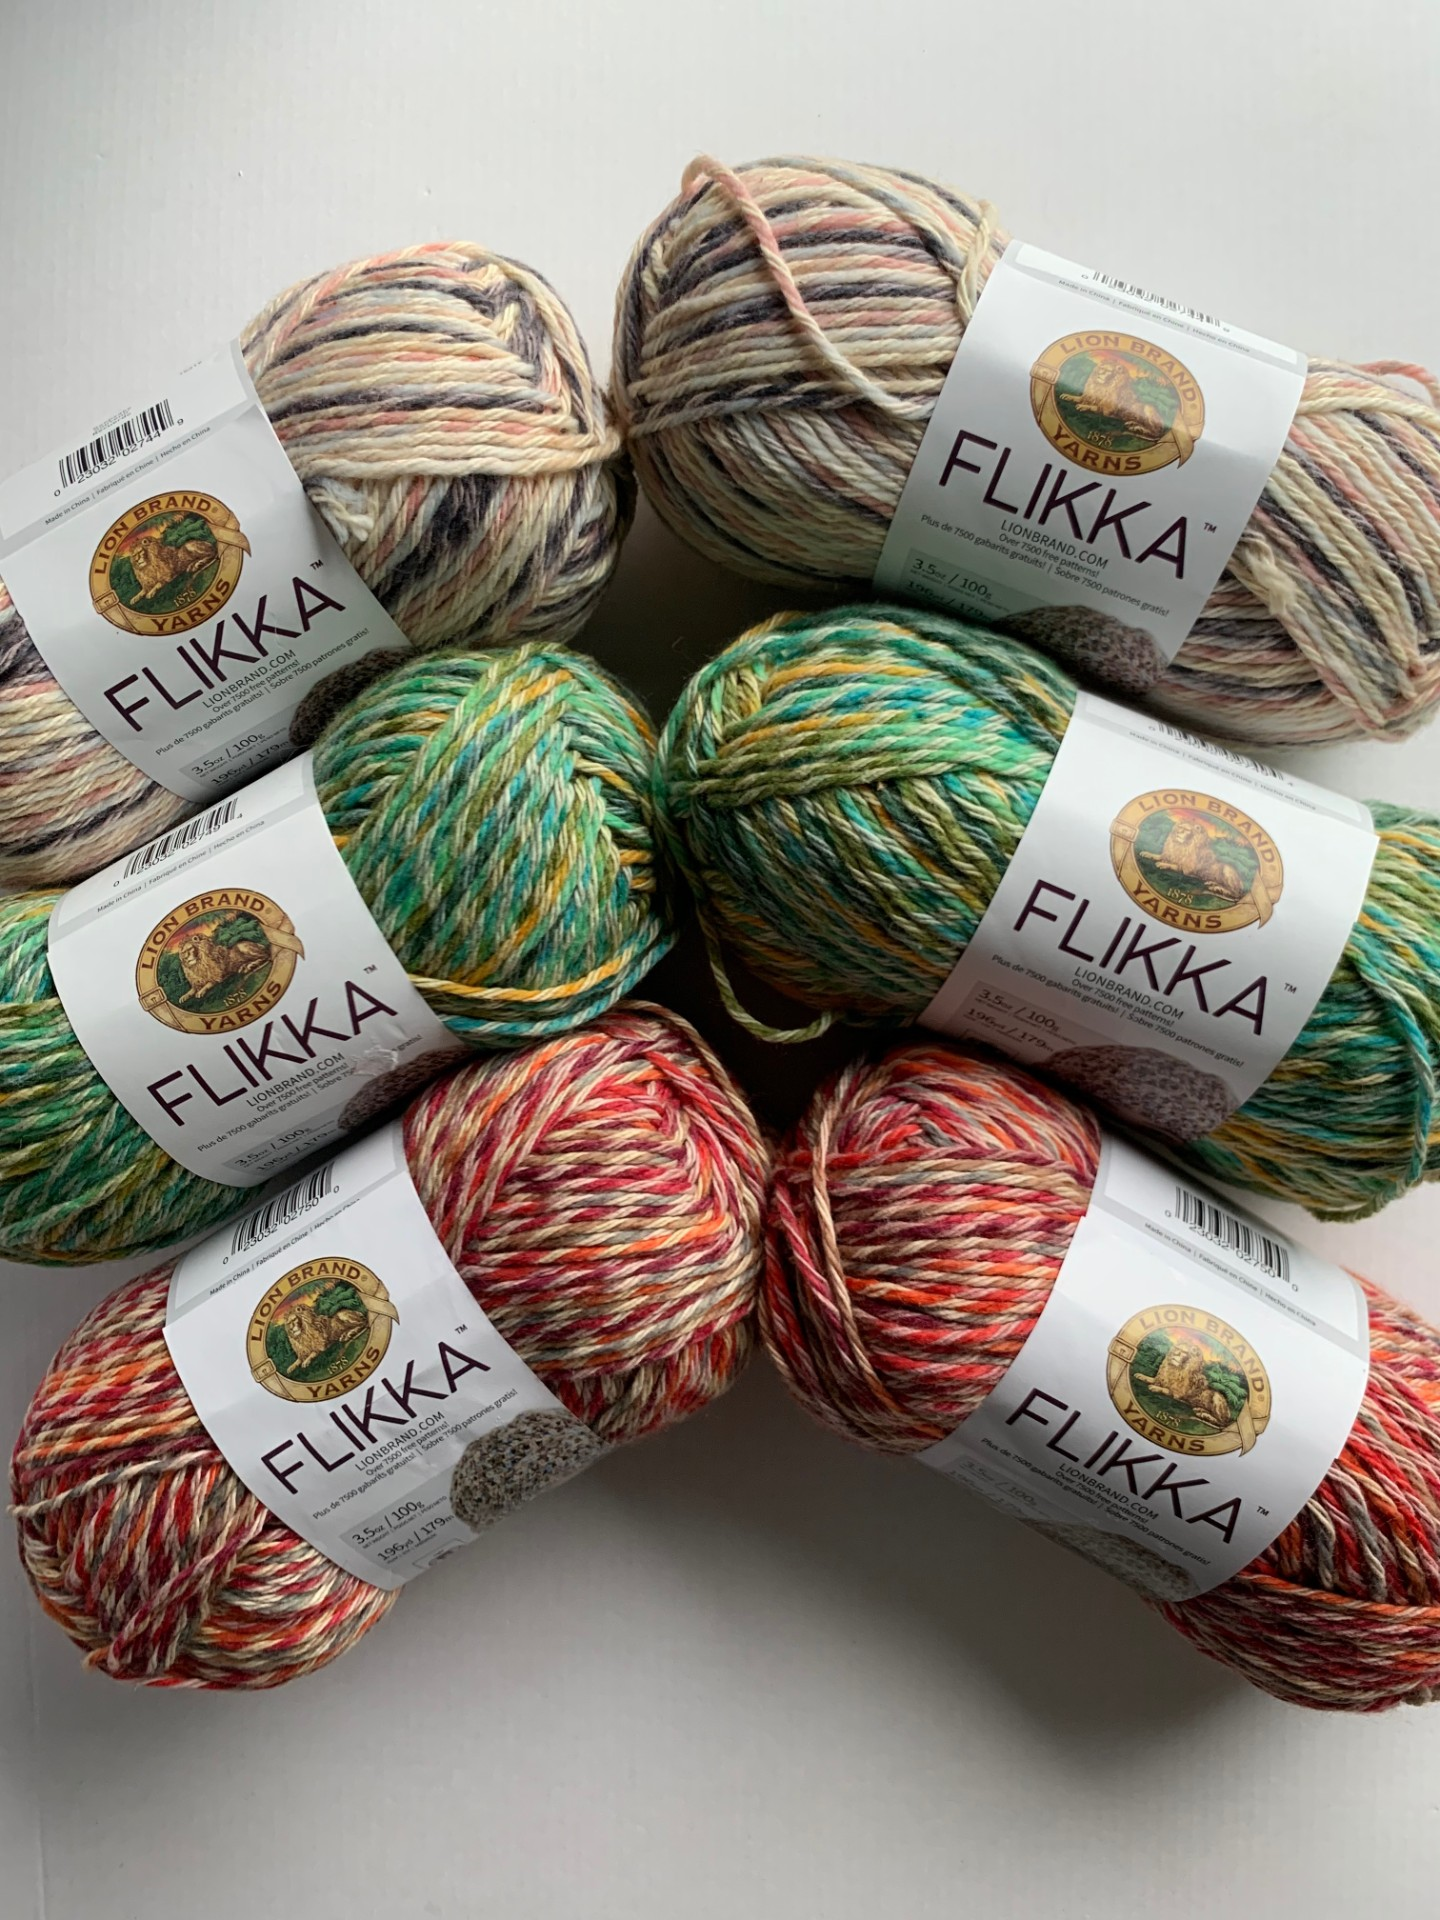 Flikka Projects + Summer 2019 Giveaway